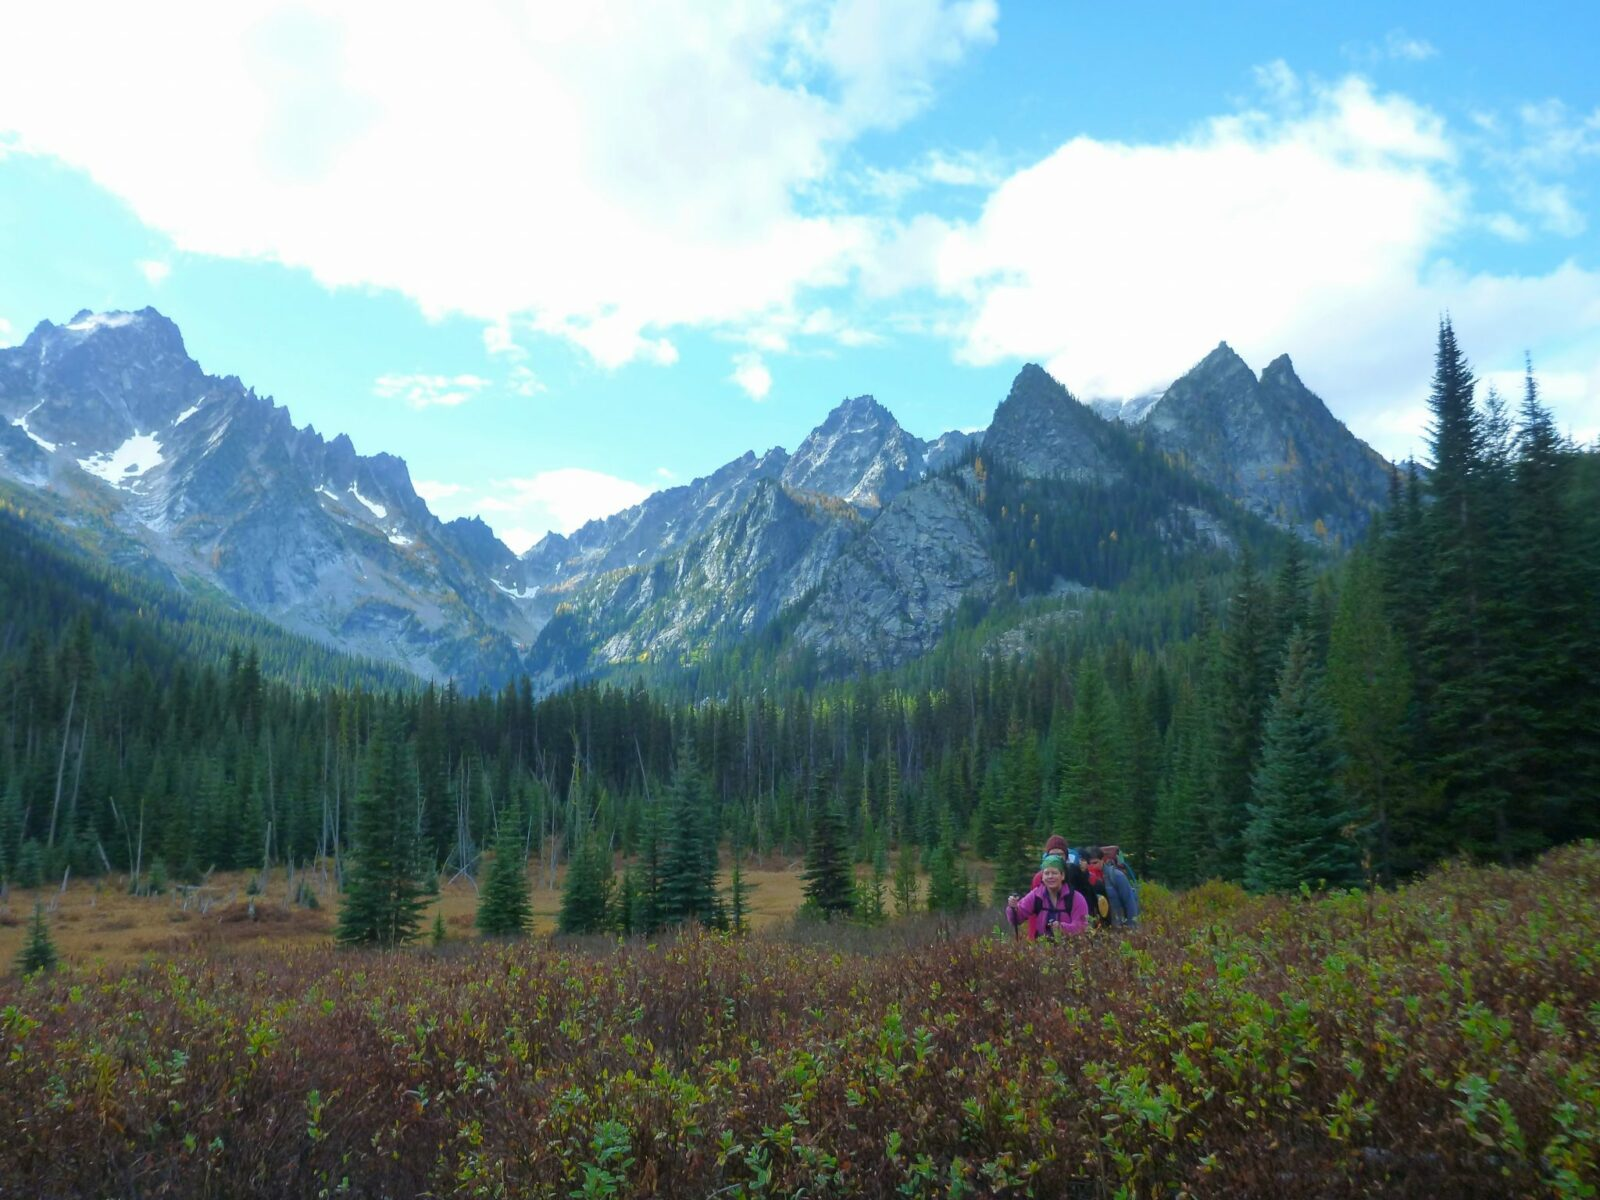 Bushes in the foreground in a meadow surrounded by evergreen trees and high mountains with snow. A group of hikers are going through the meadow